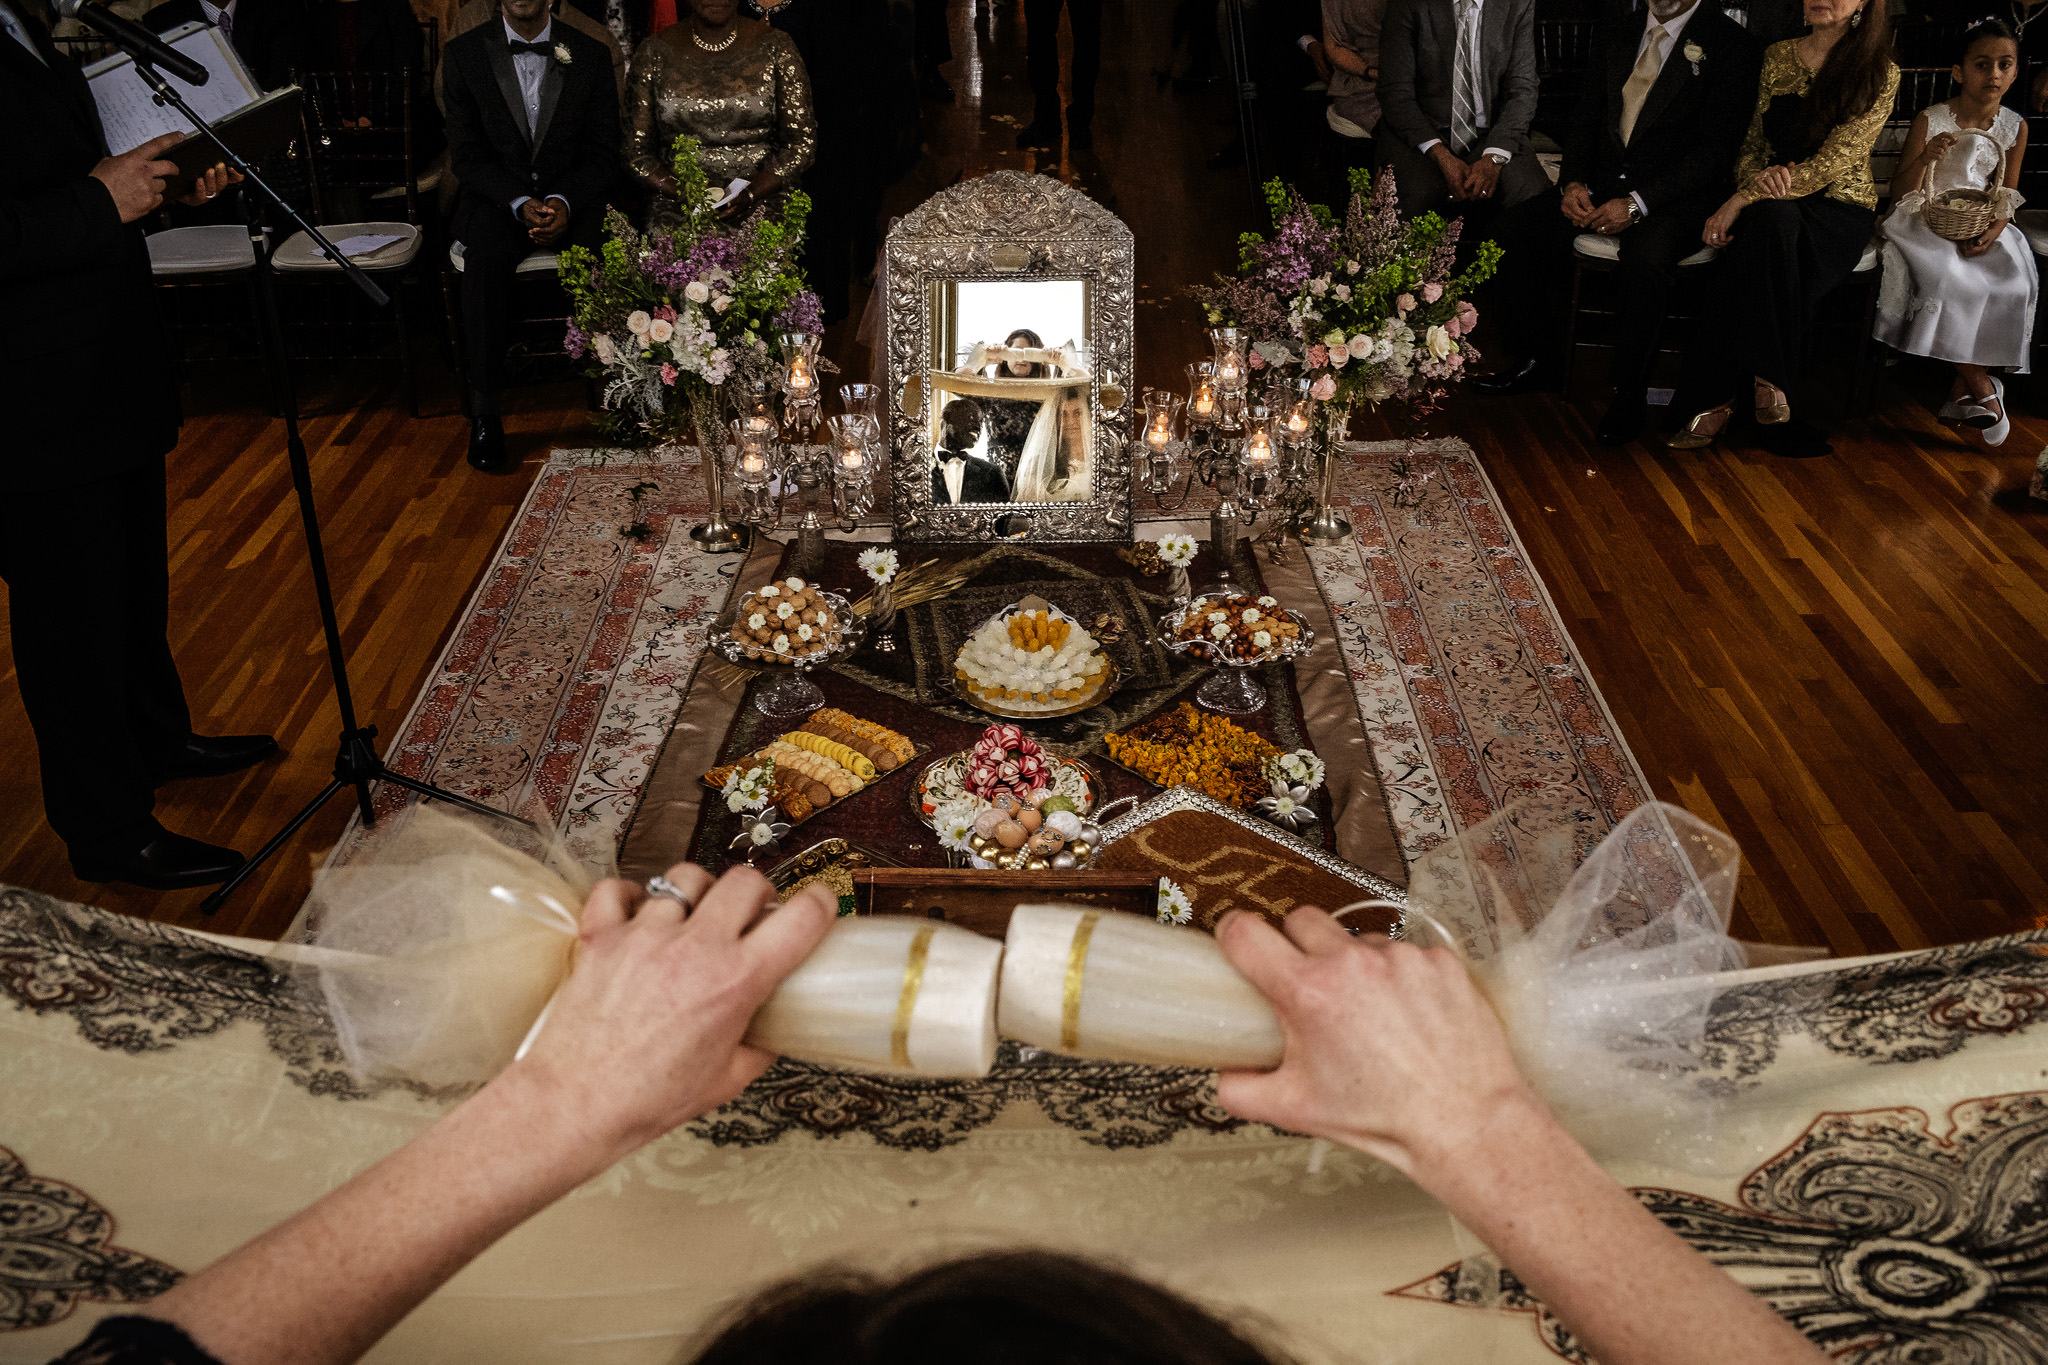 Persian wedding traditions California